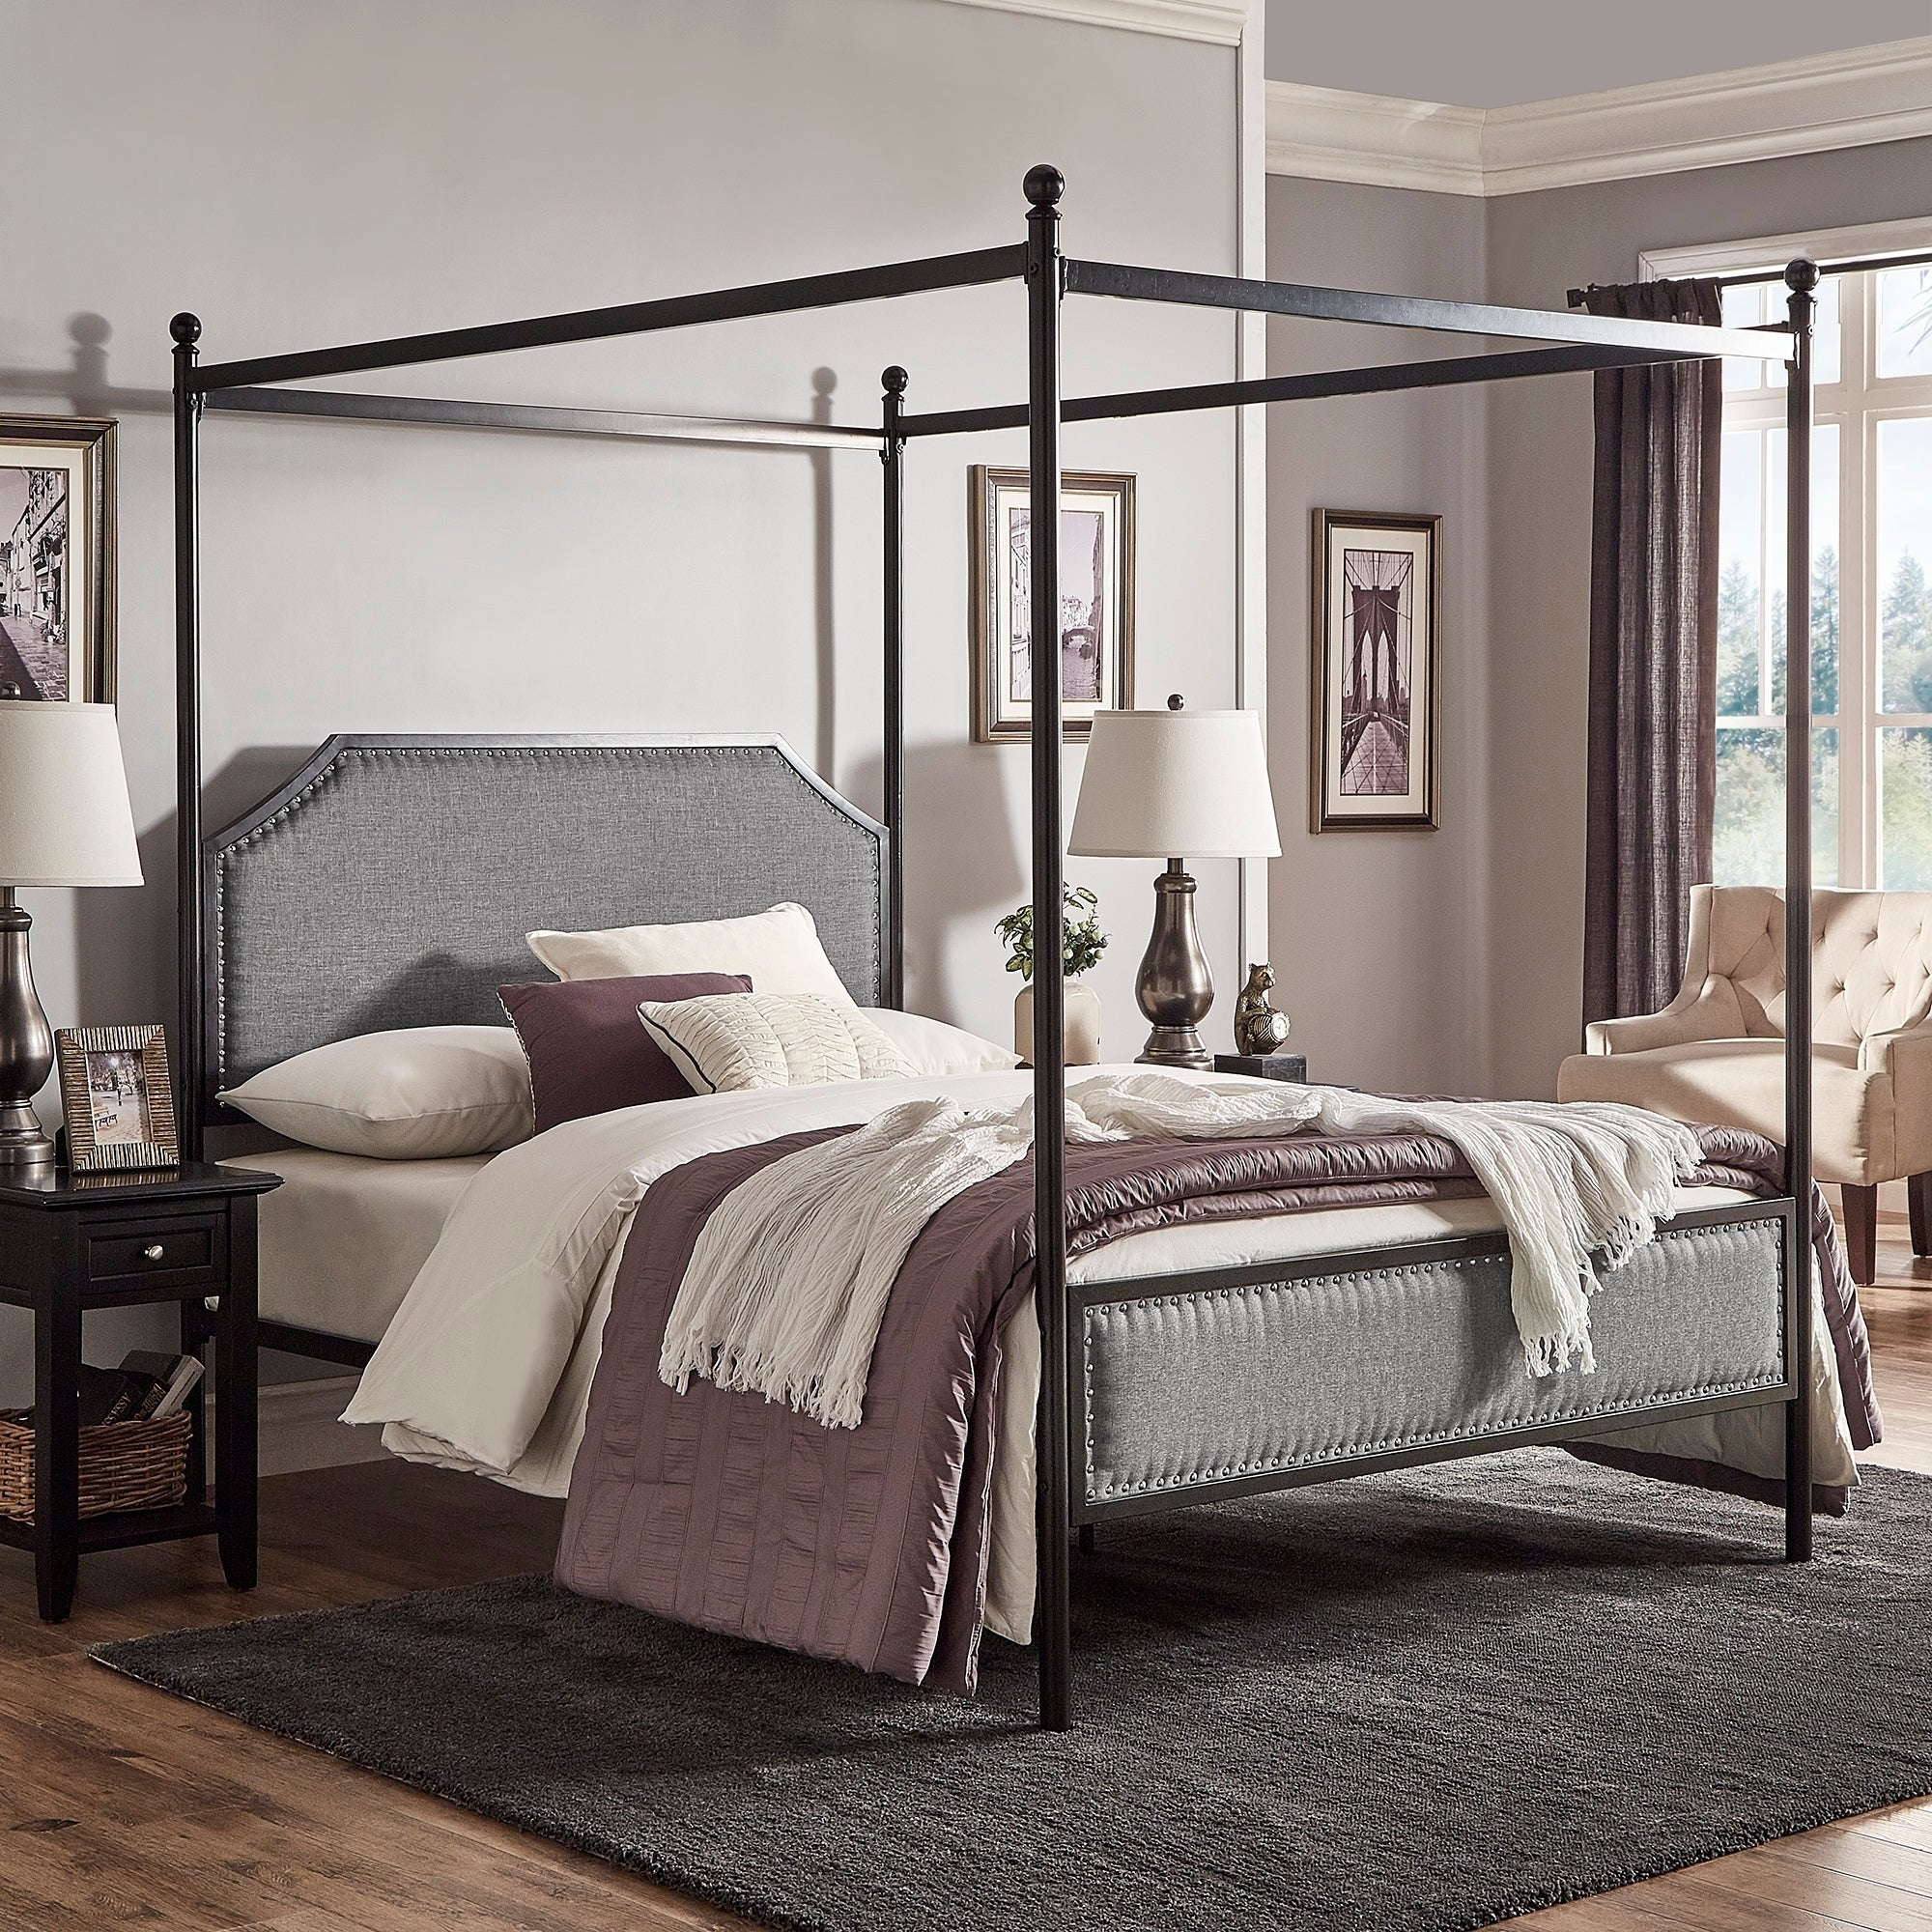 Rayen Grey Upholstered Metal Canopy Queen Bed By Inspire Q Clic